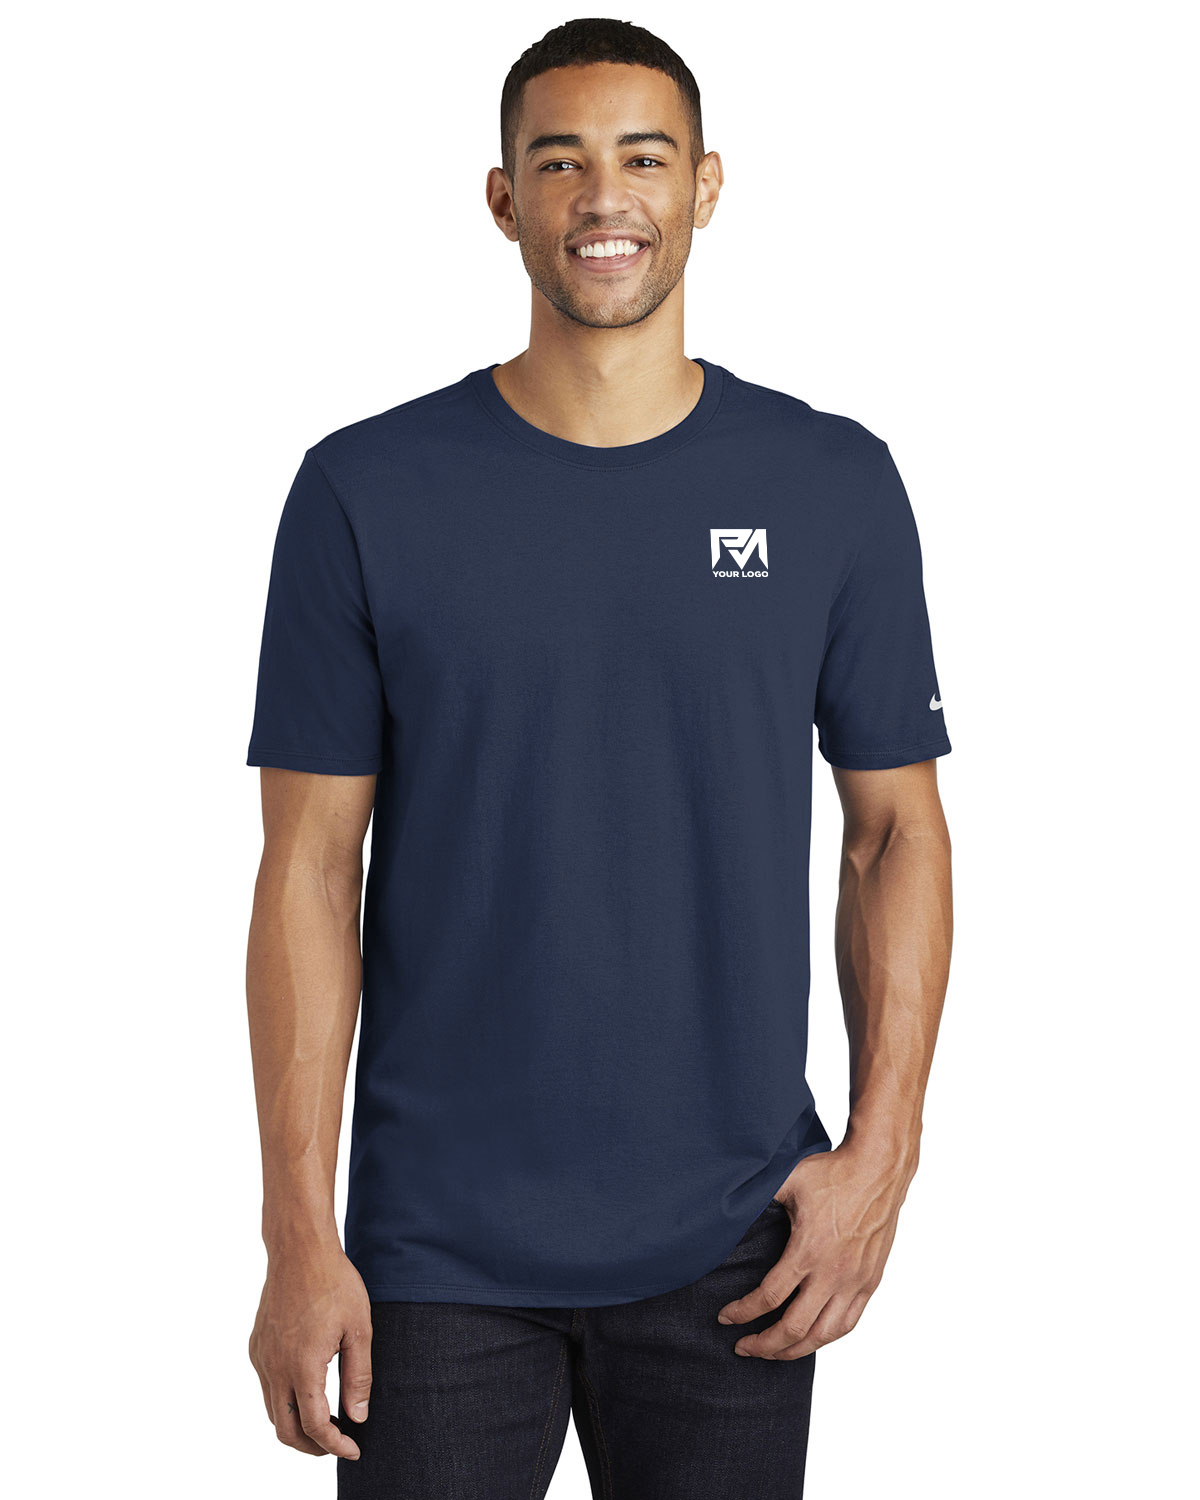 Nike Golf NKBQ5233 Core Cotton Tee